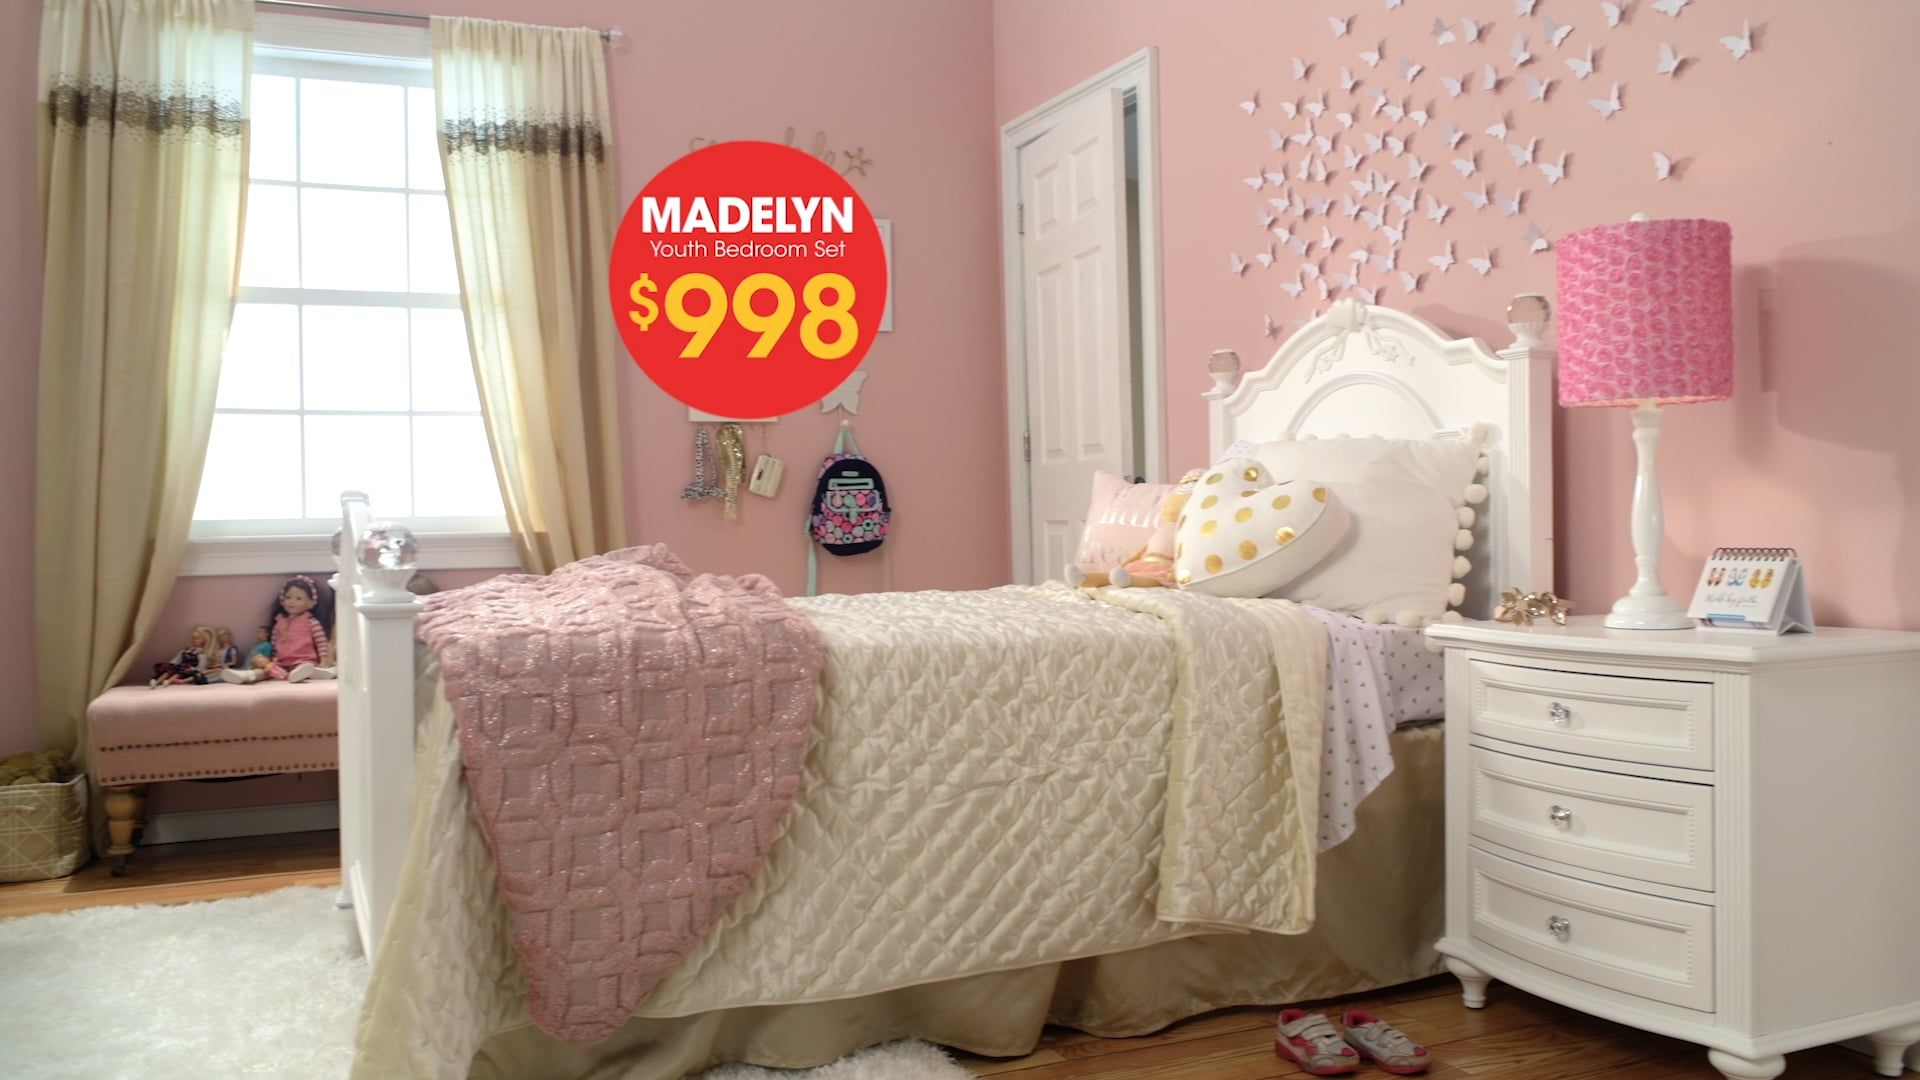 Madelyn Youth Bedroom Set Mattress sets, Bed, Twin bed